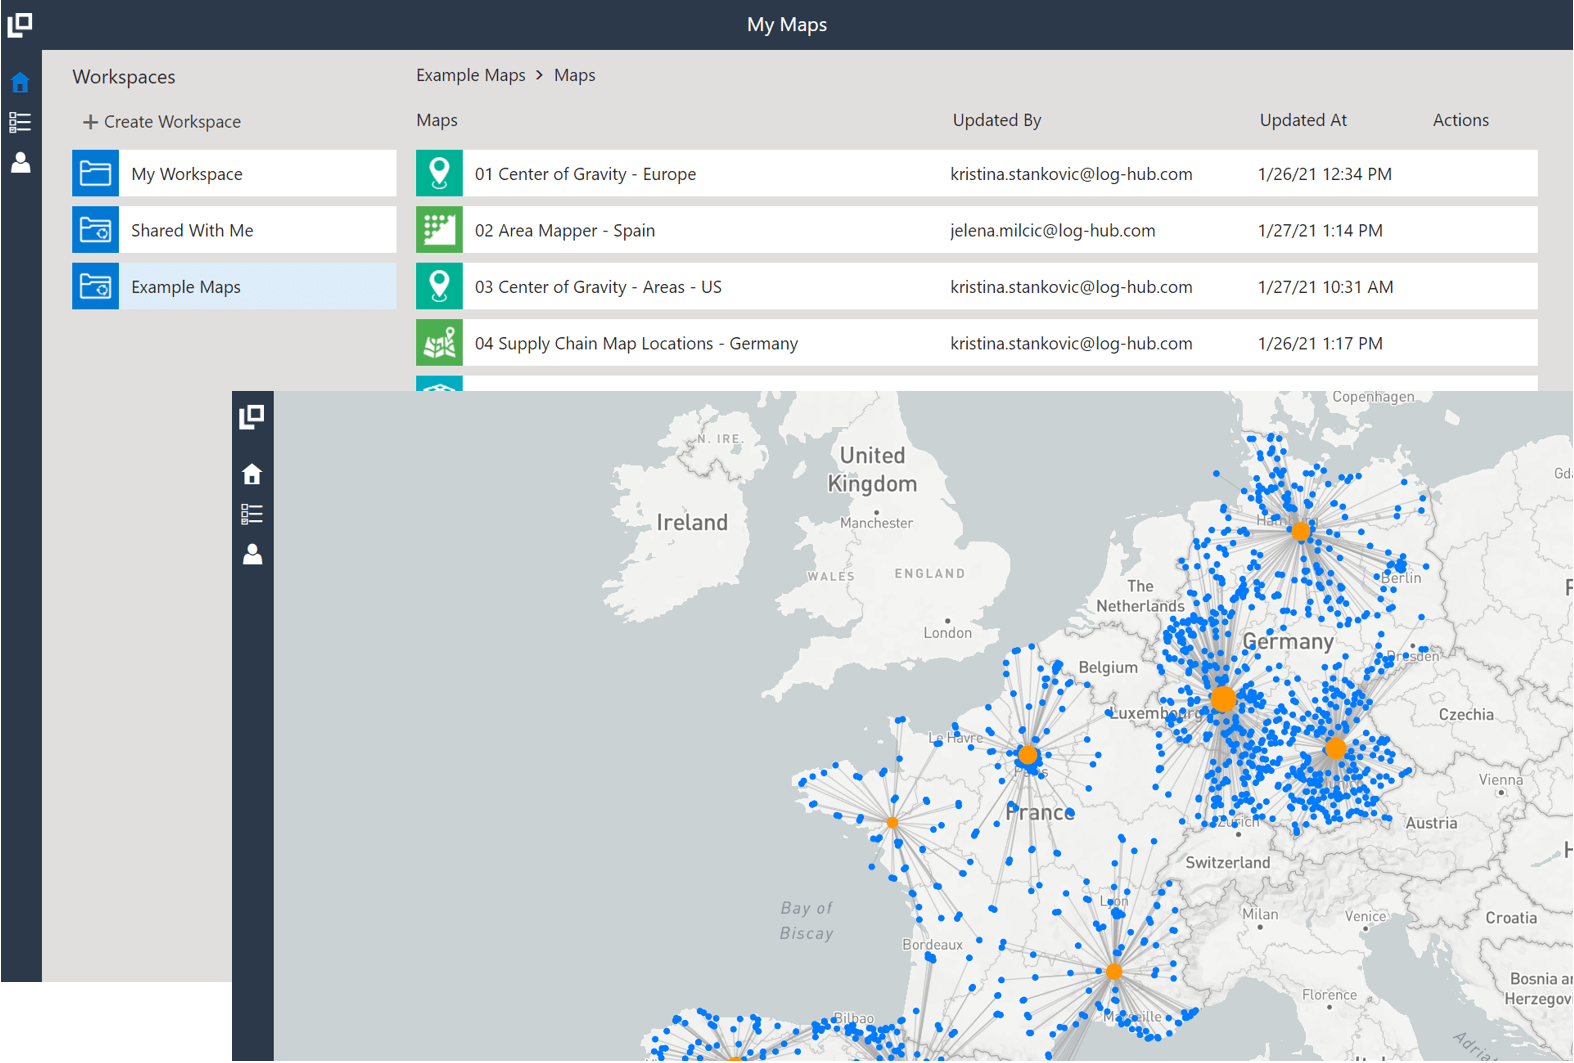 My Maps is a powerful geospatial analysis platform to create, share and embed maps.